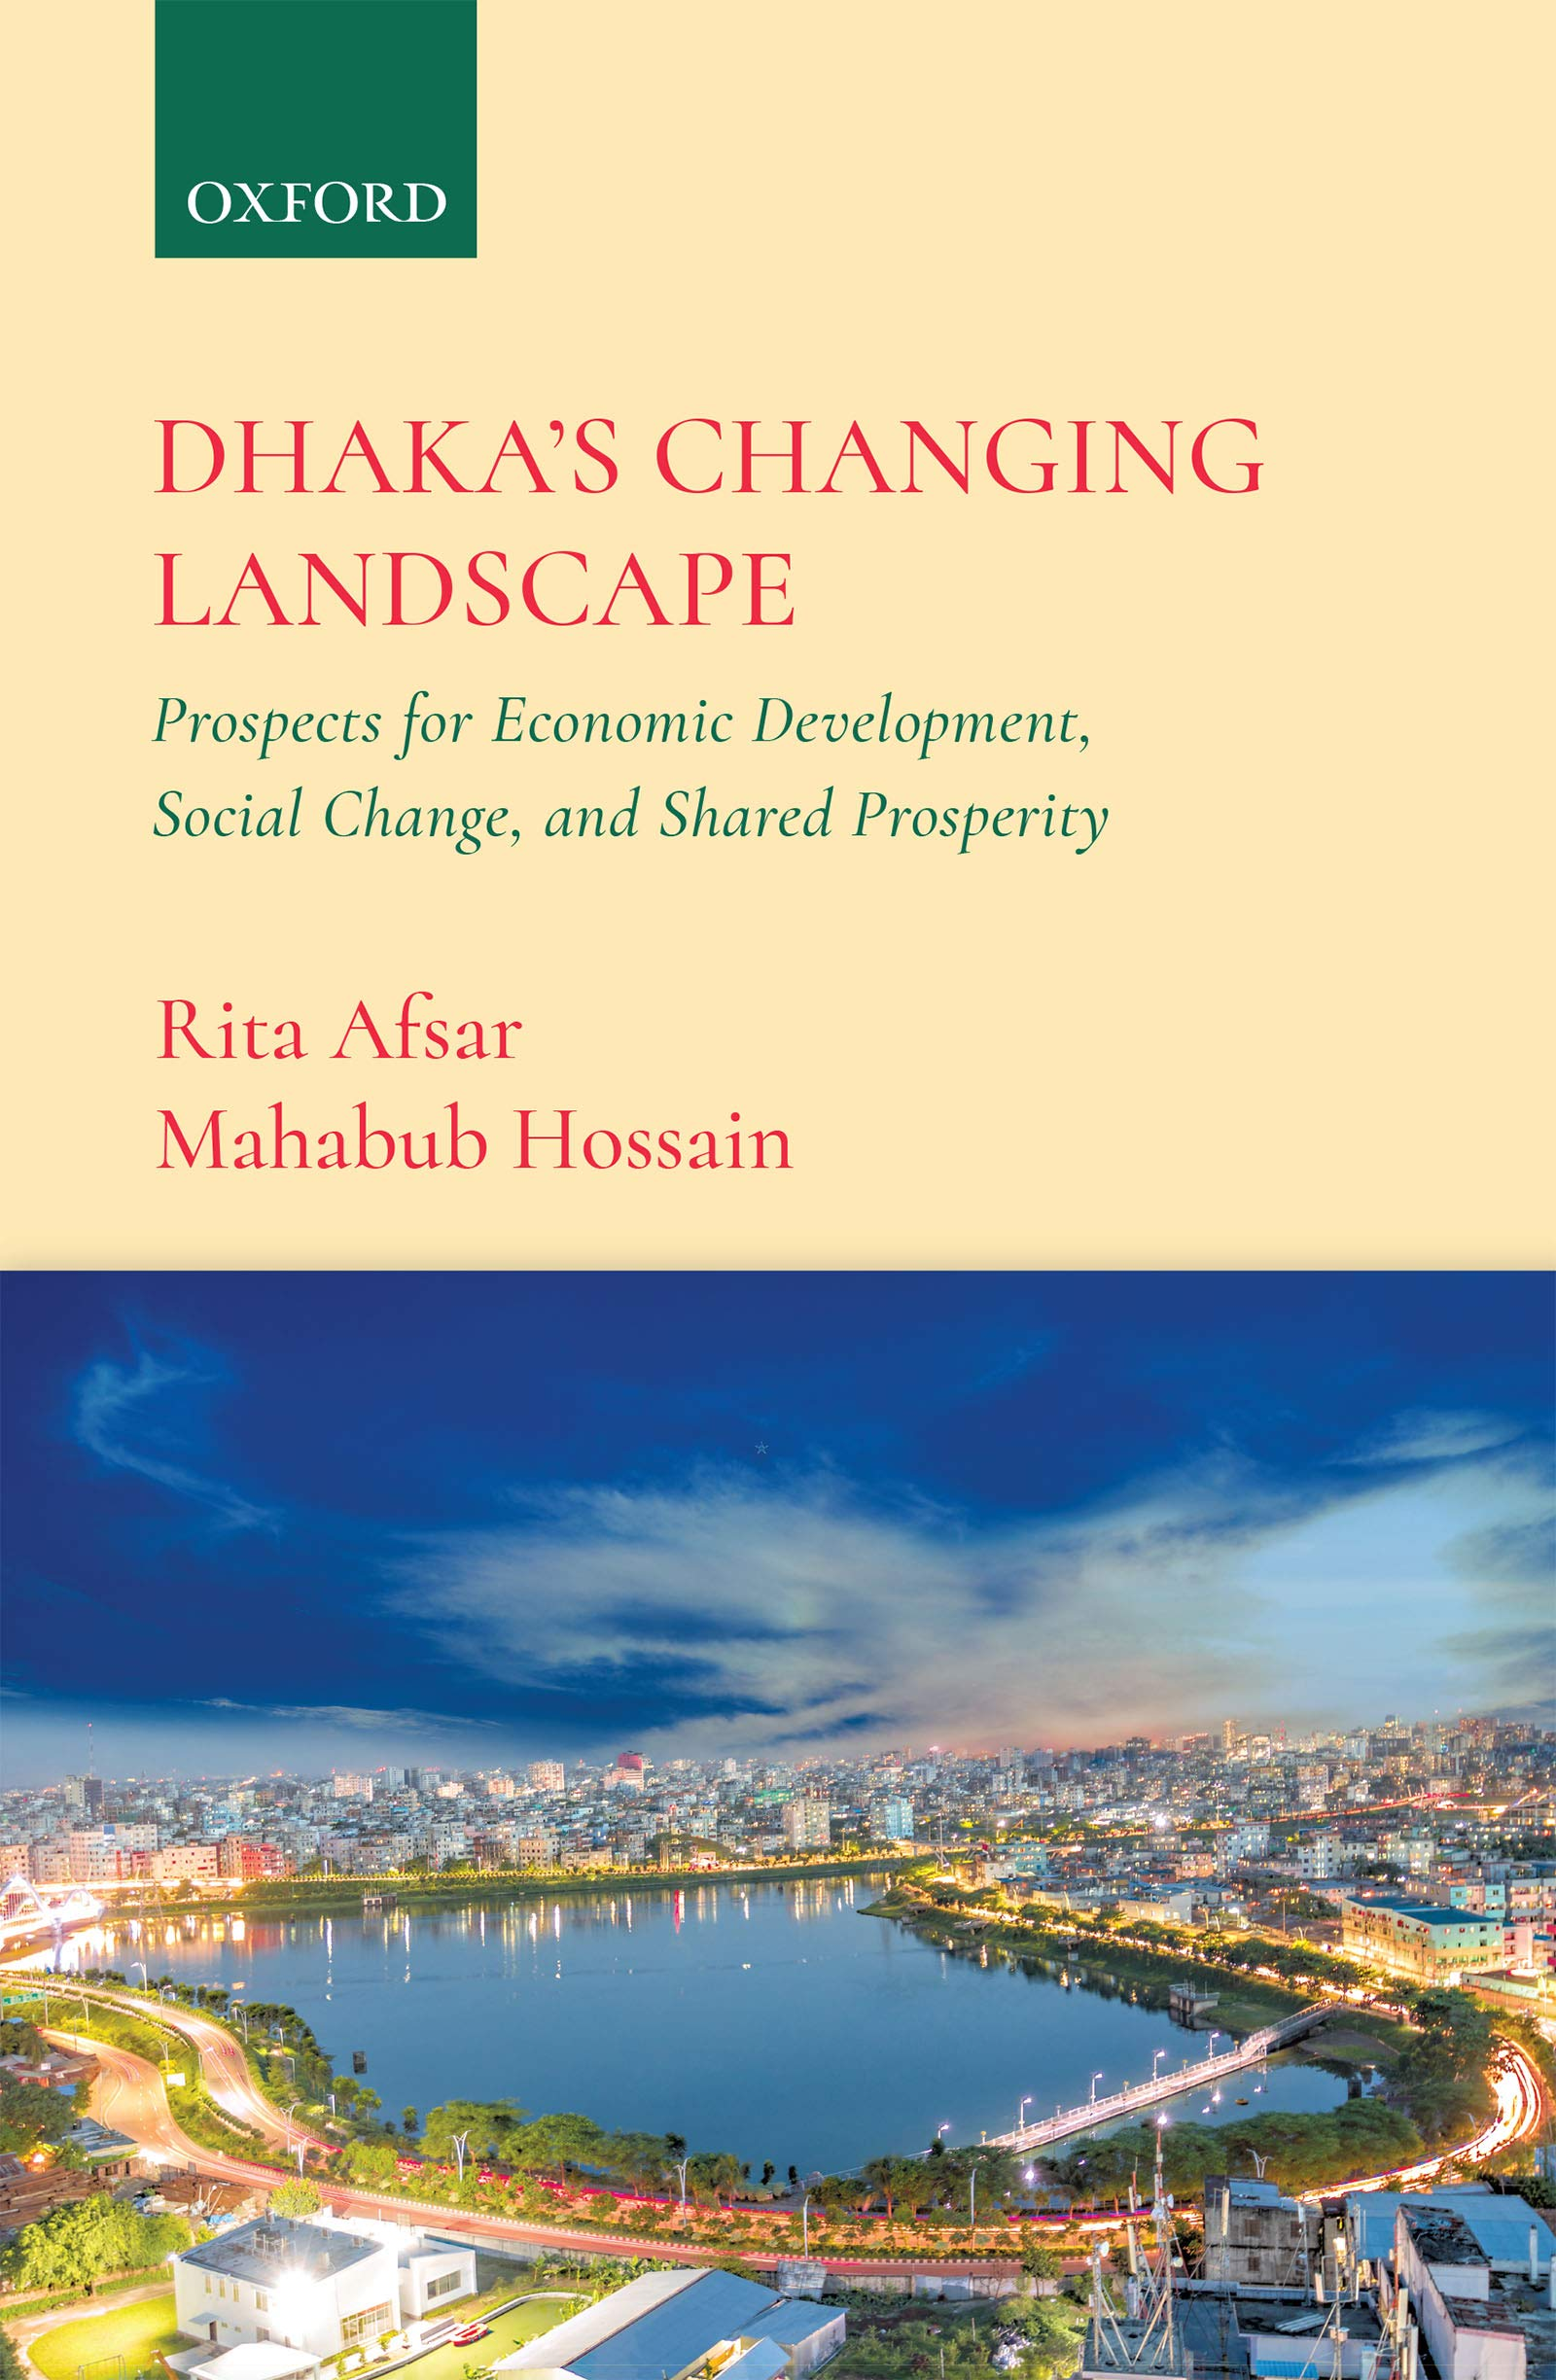 Dhaka's Changing Landscape: Prospects for Economic Development, Social Change, and Shared Prosperity